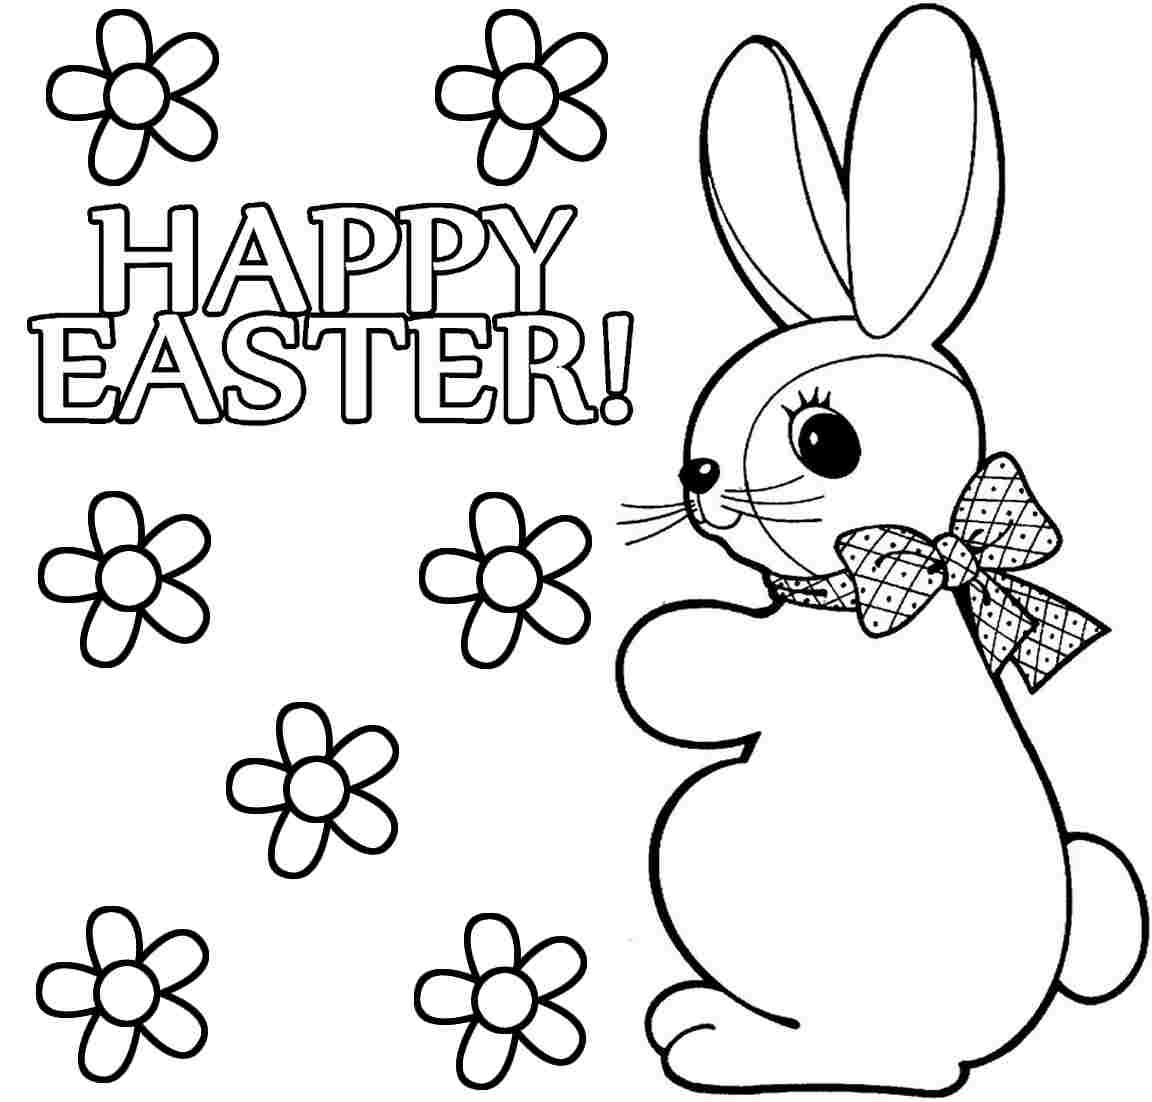 coloring pages easter printable disney easter coloring pages 5 disneyclipscom pages easter coloring